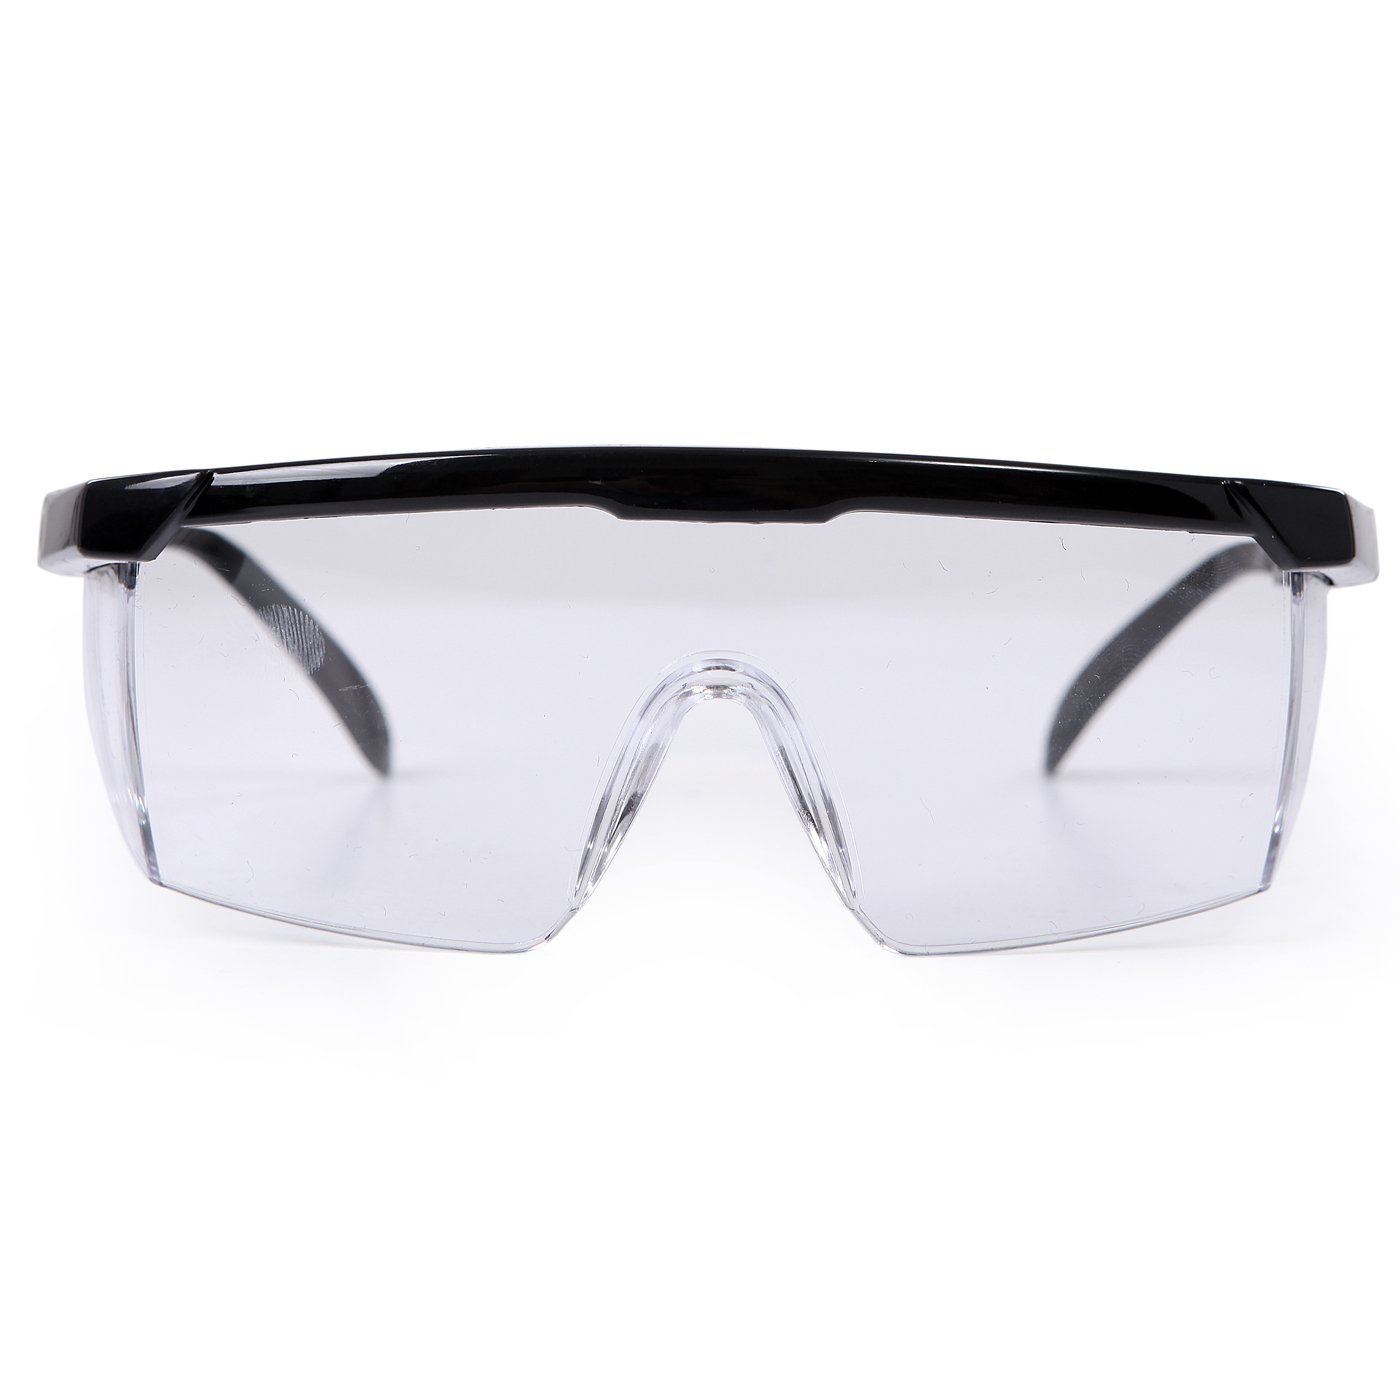 hde safety glasses clear lens protective eyewear for general work